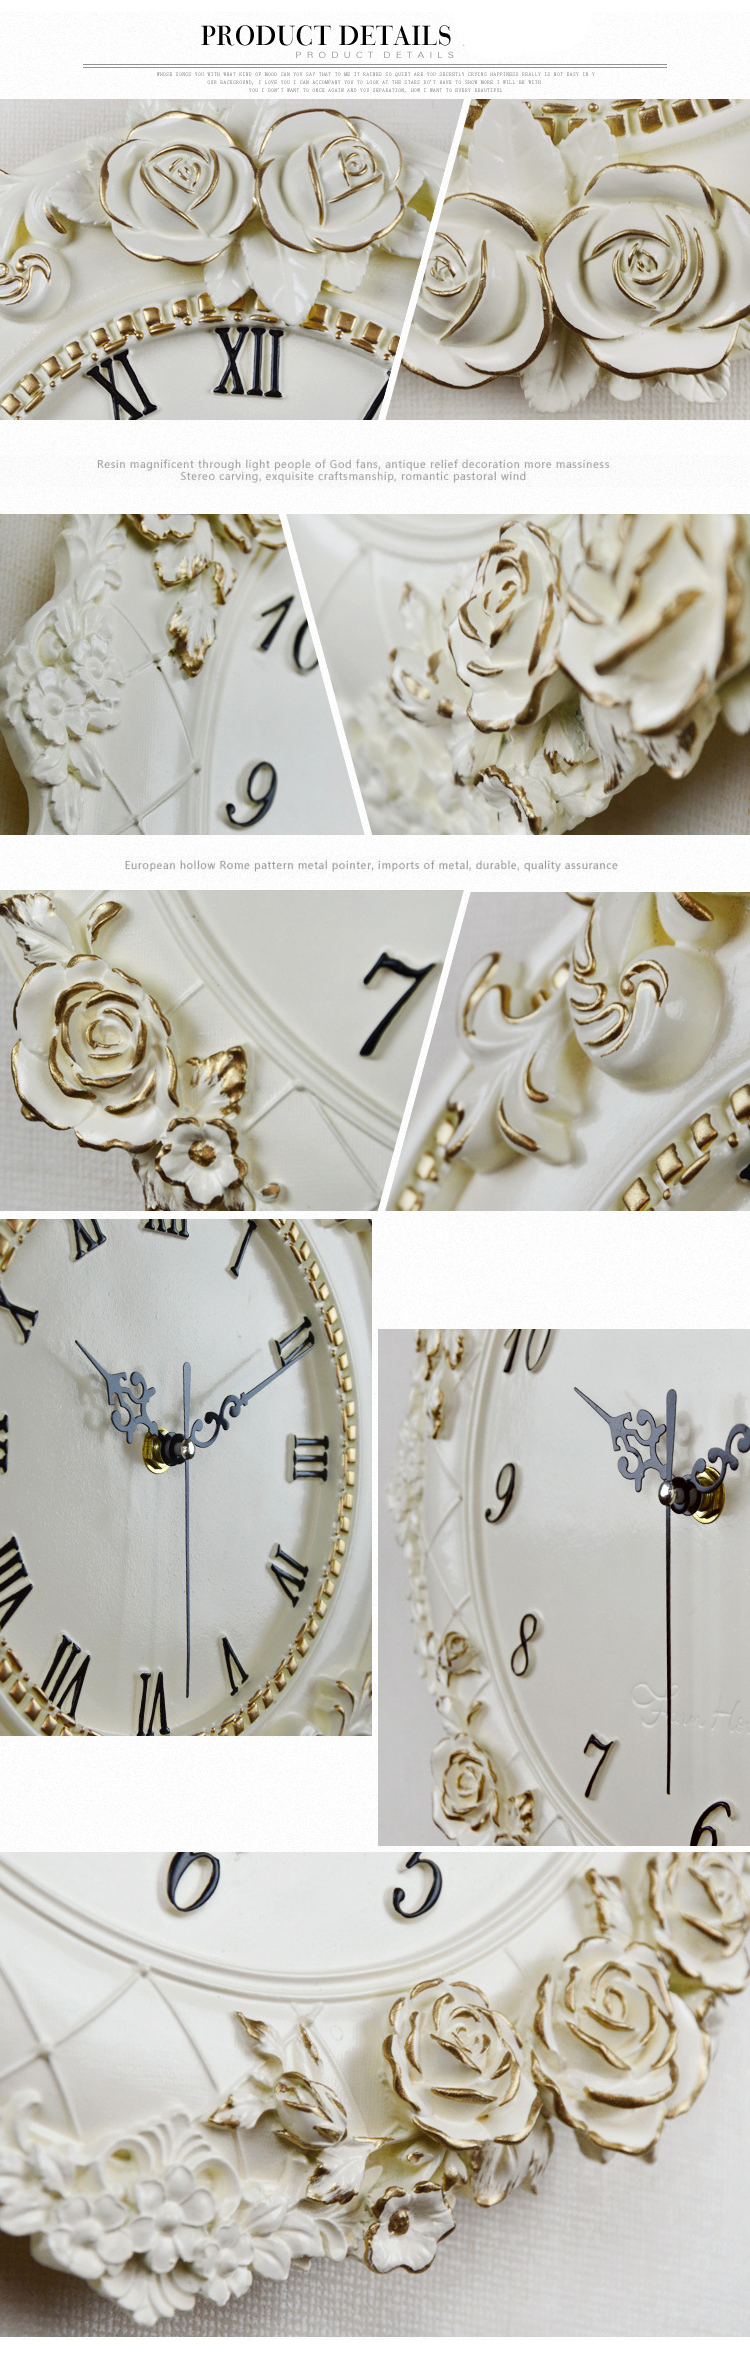 wall-clock-large-wall-clock-watch-vintage-wall-clock-home-decor-accessories-3d-statue-digital-clock-house-room-wedding-party-decoration (9)